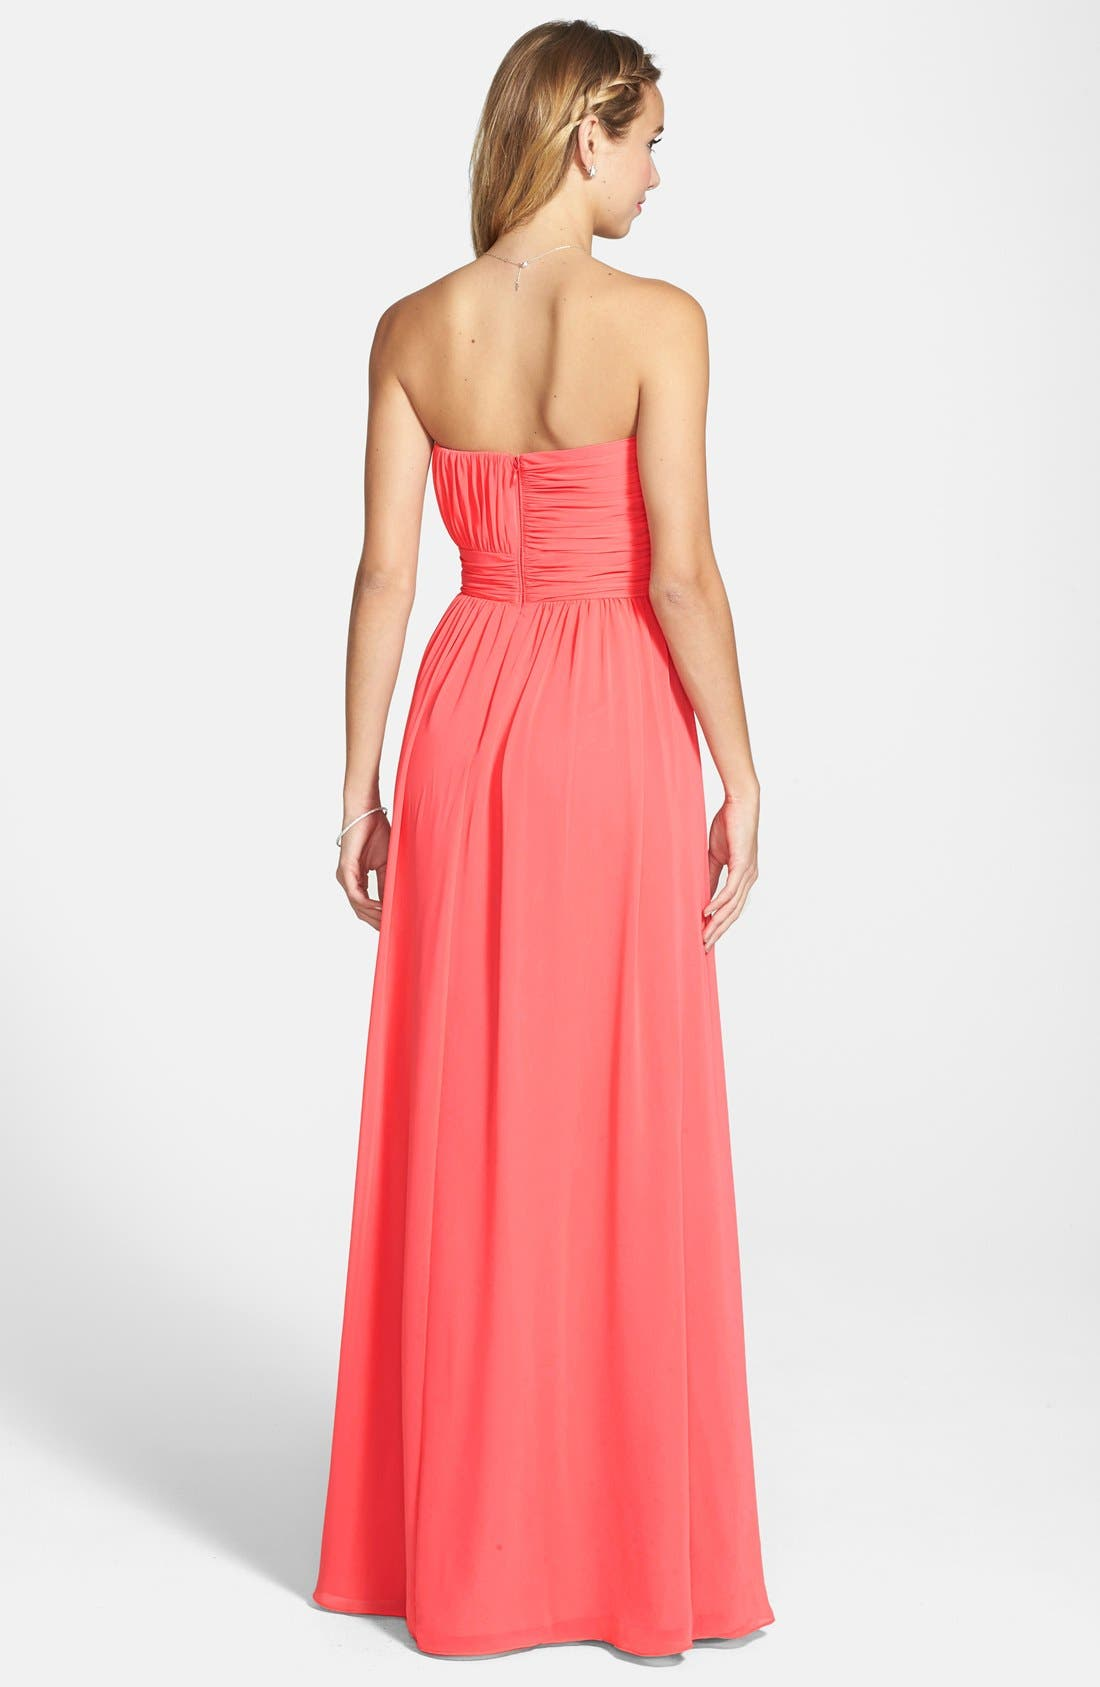 HAILEY BY ADRIANNA PAPELL,                             Shirred Chiffon Strapless Gown,                             Alternate thumbnail 2, color,                             650